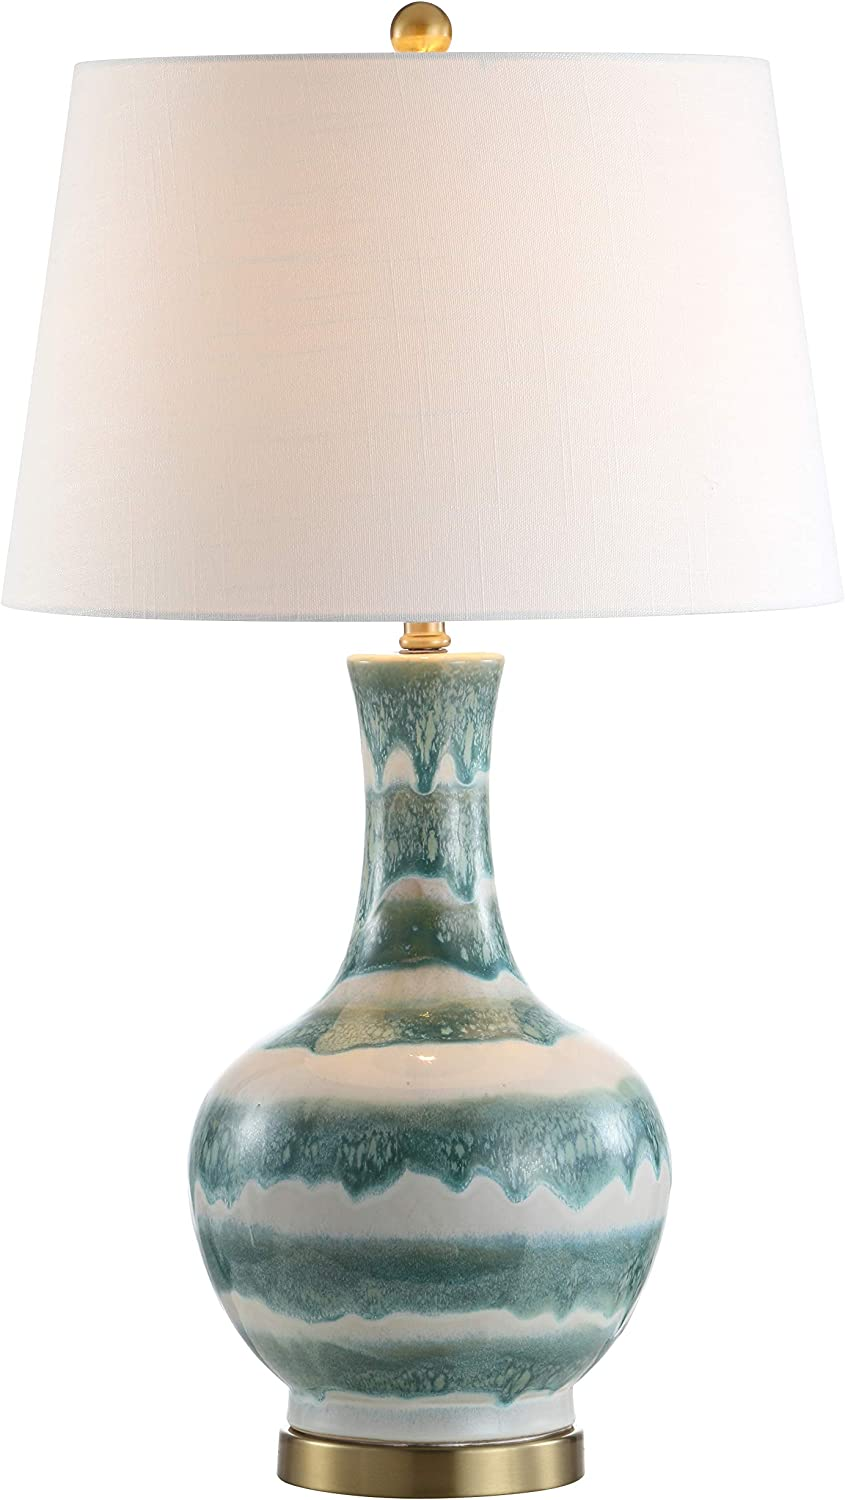 "JONATHAN Y JYL3054A Tucker 30.5"" Striped Ceramic/Metal LED Lamp Contemporary,Transitional for Bedroom, Living Room, Office, College Dorm, Coffee Table, Bookcase, Green"